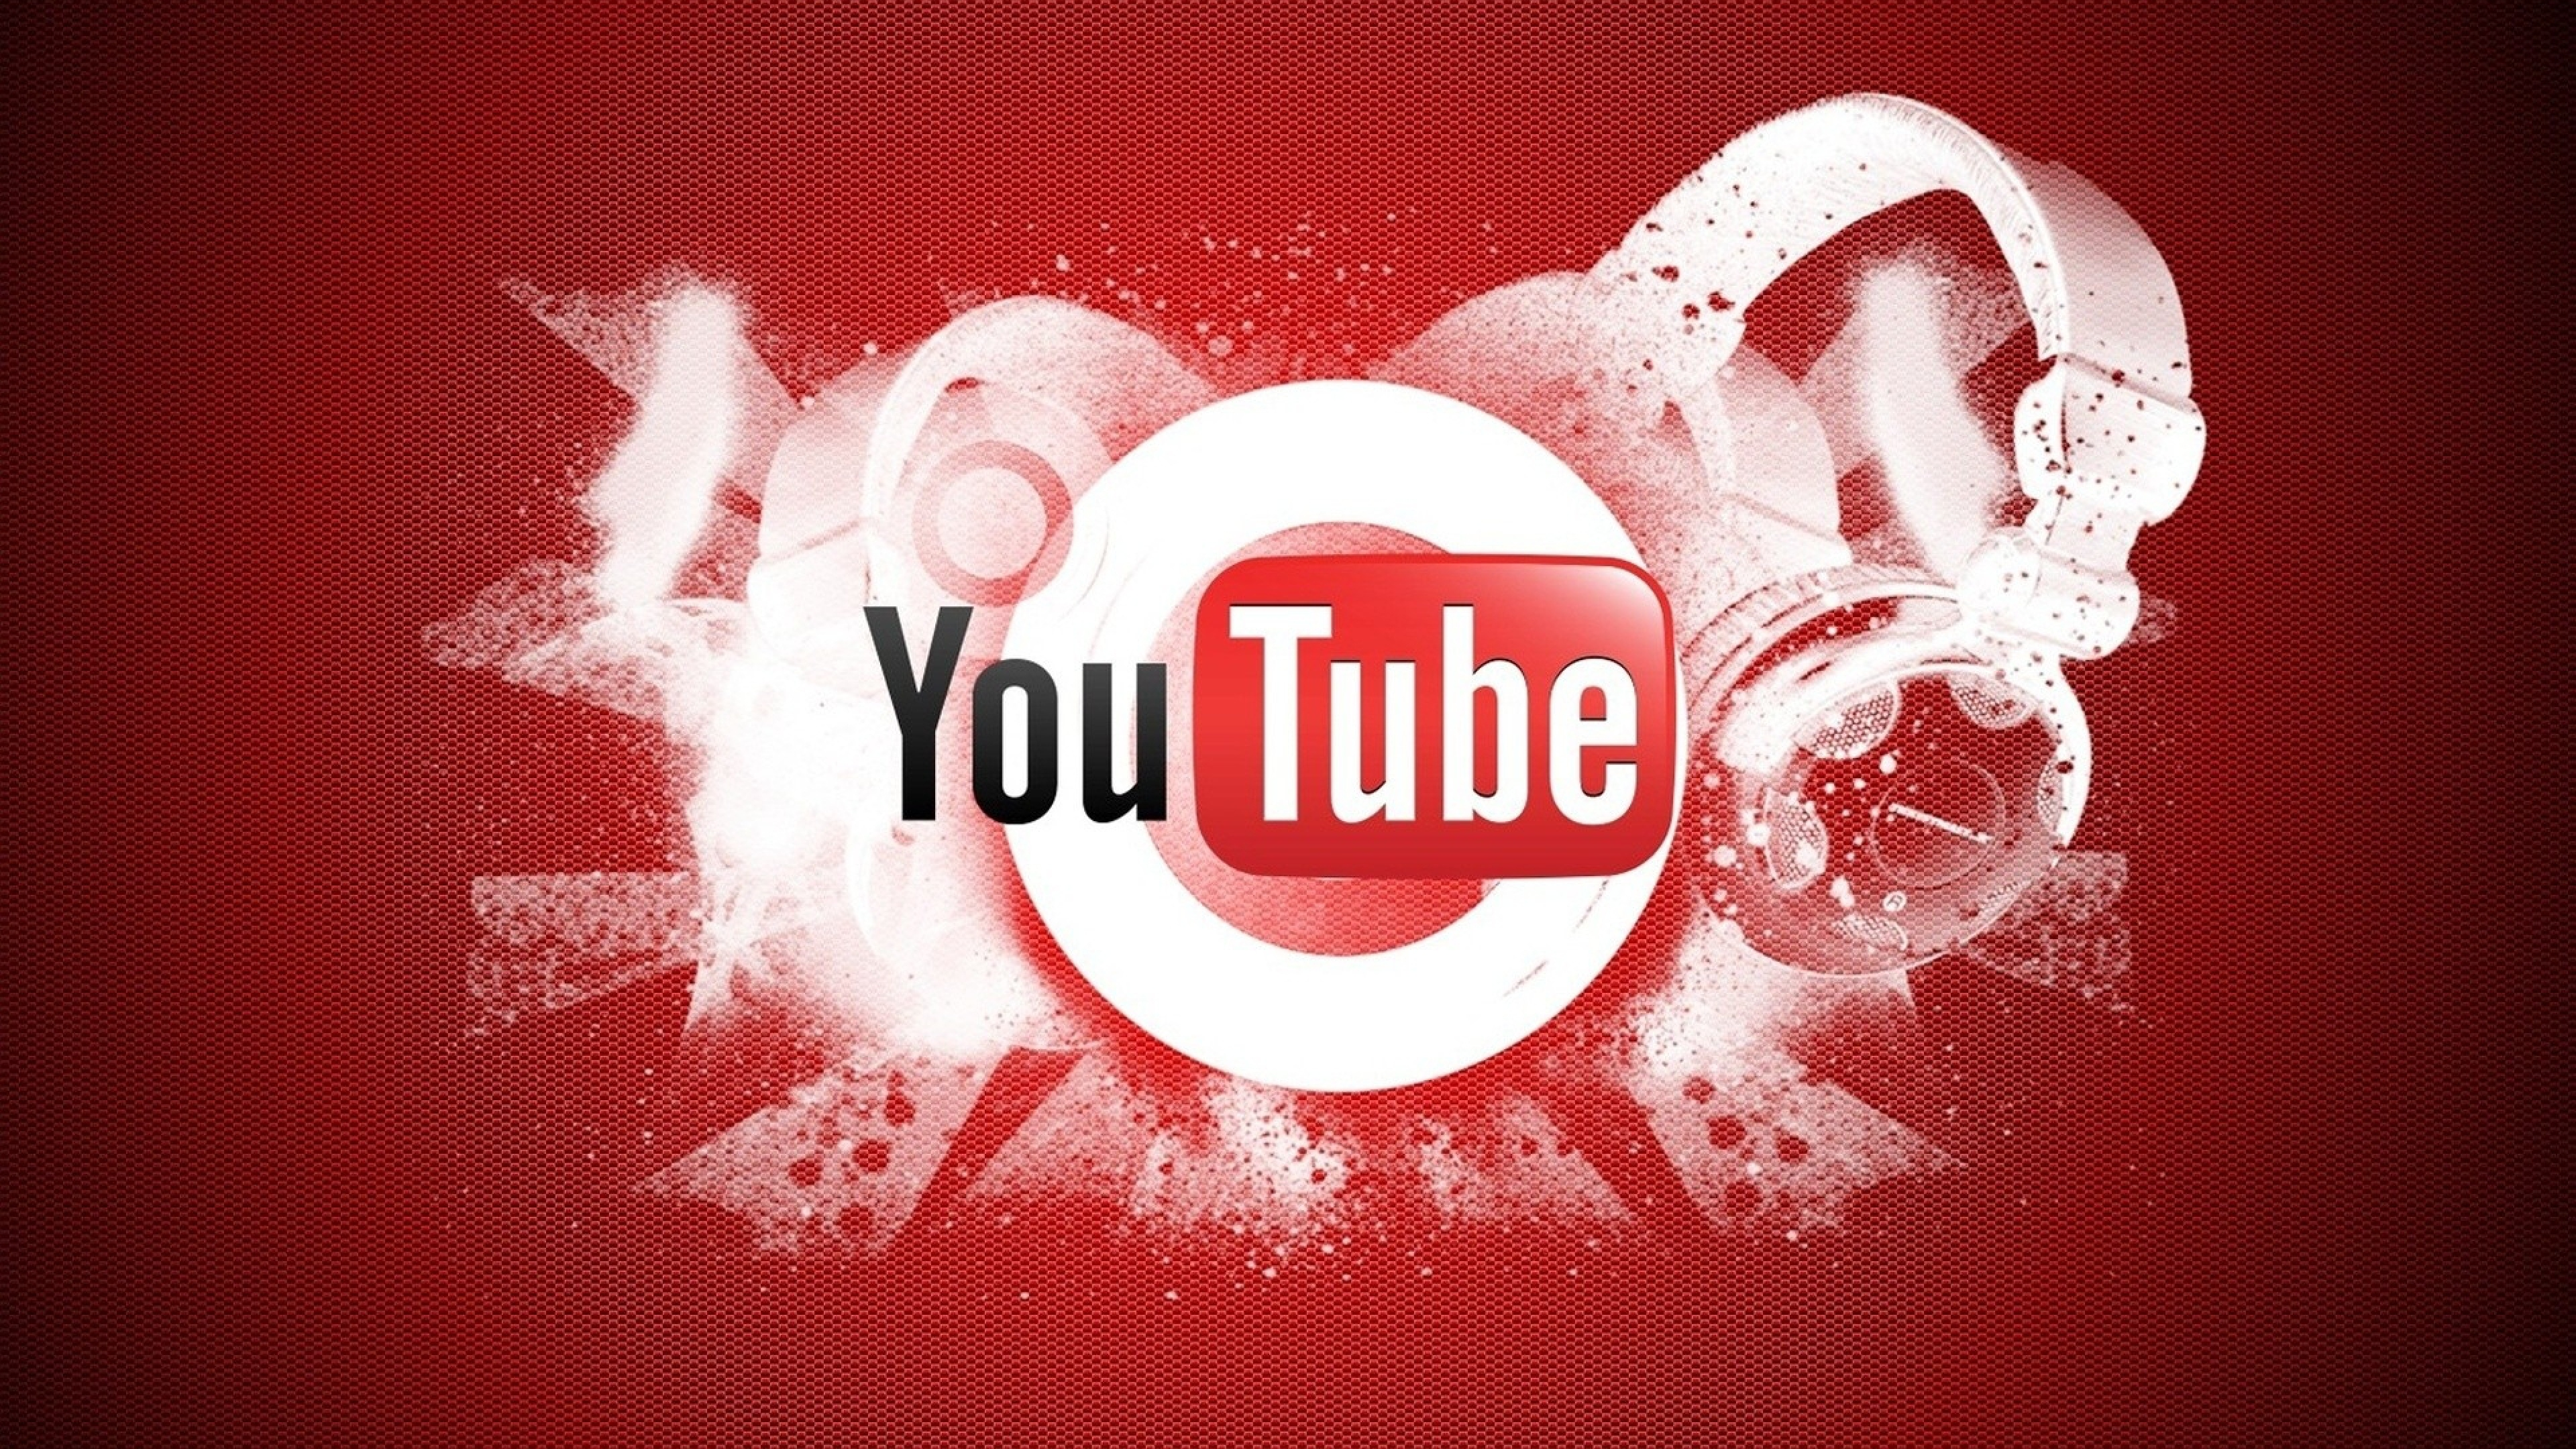 Fonds dcran Youtube Video tous les wallpapers Youtube Video 3840x2160